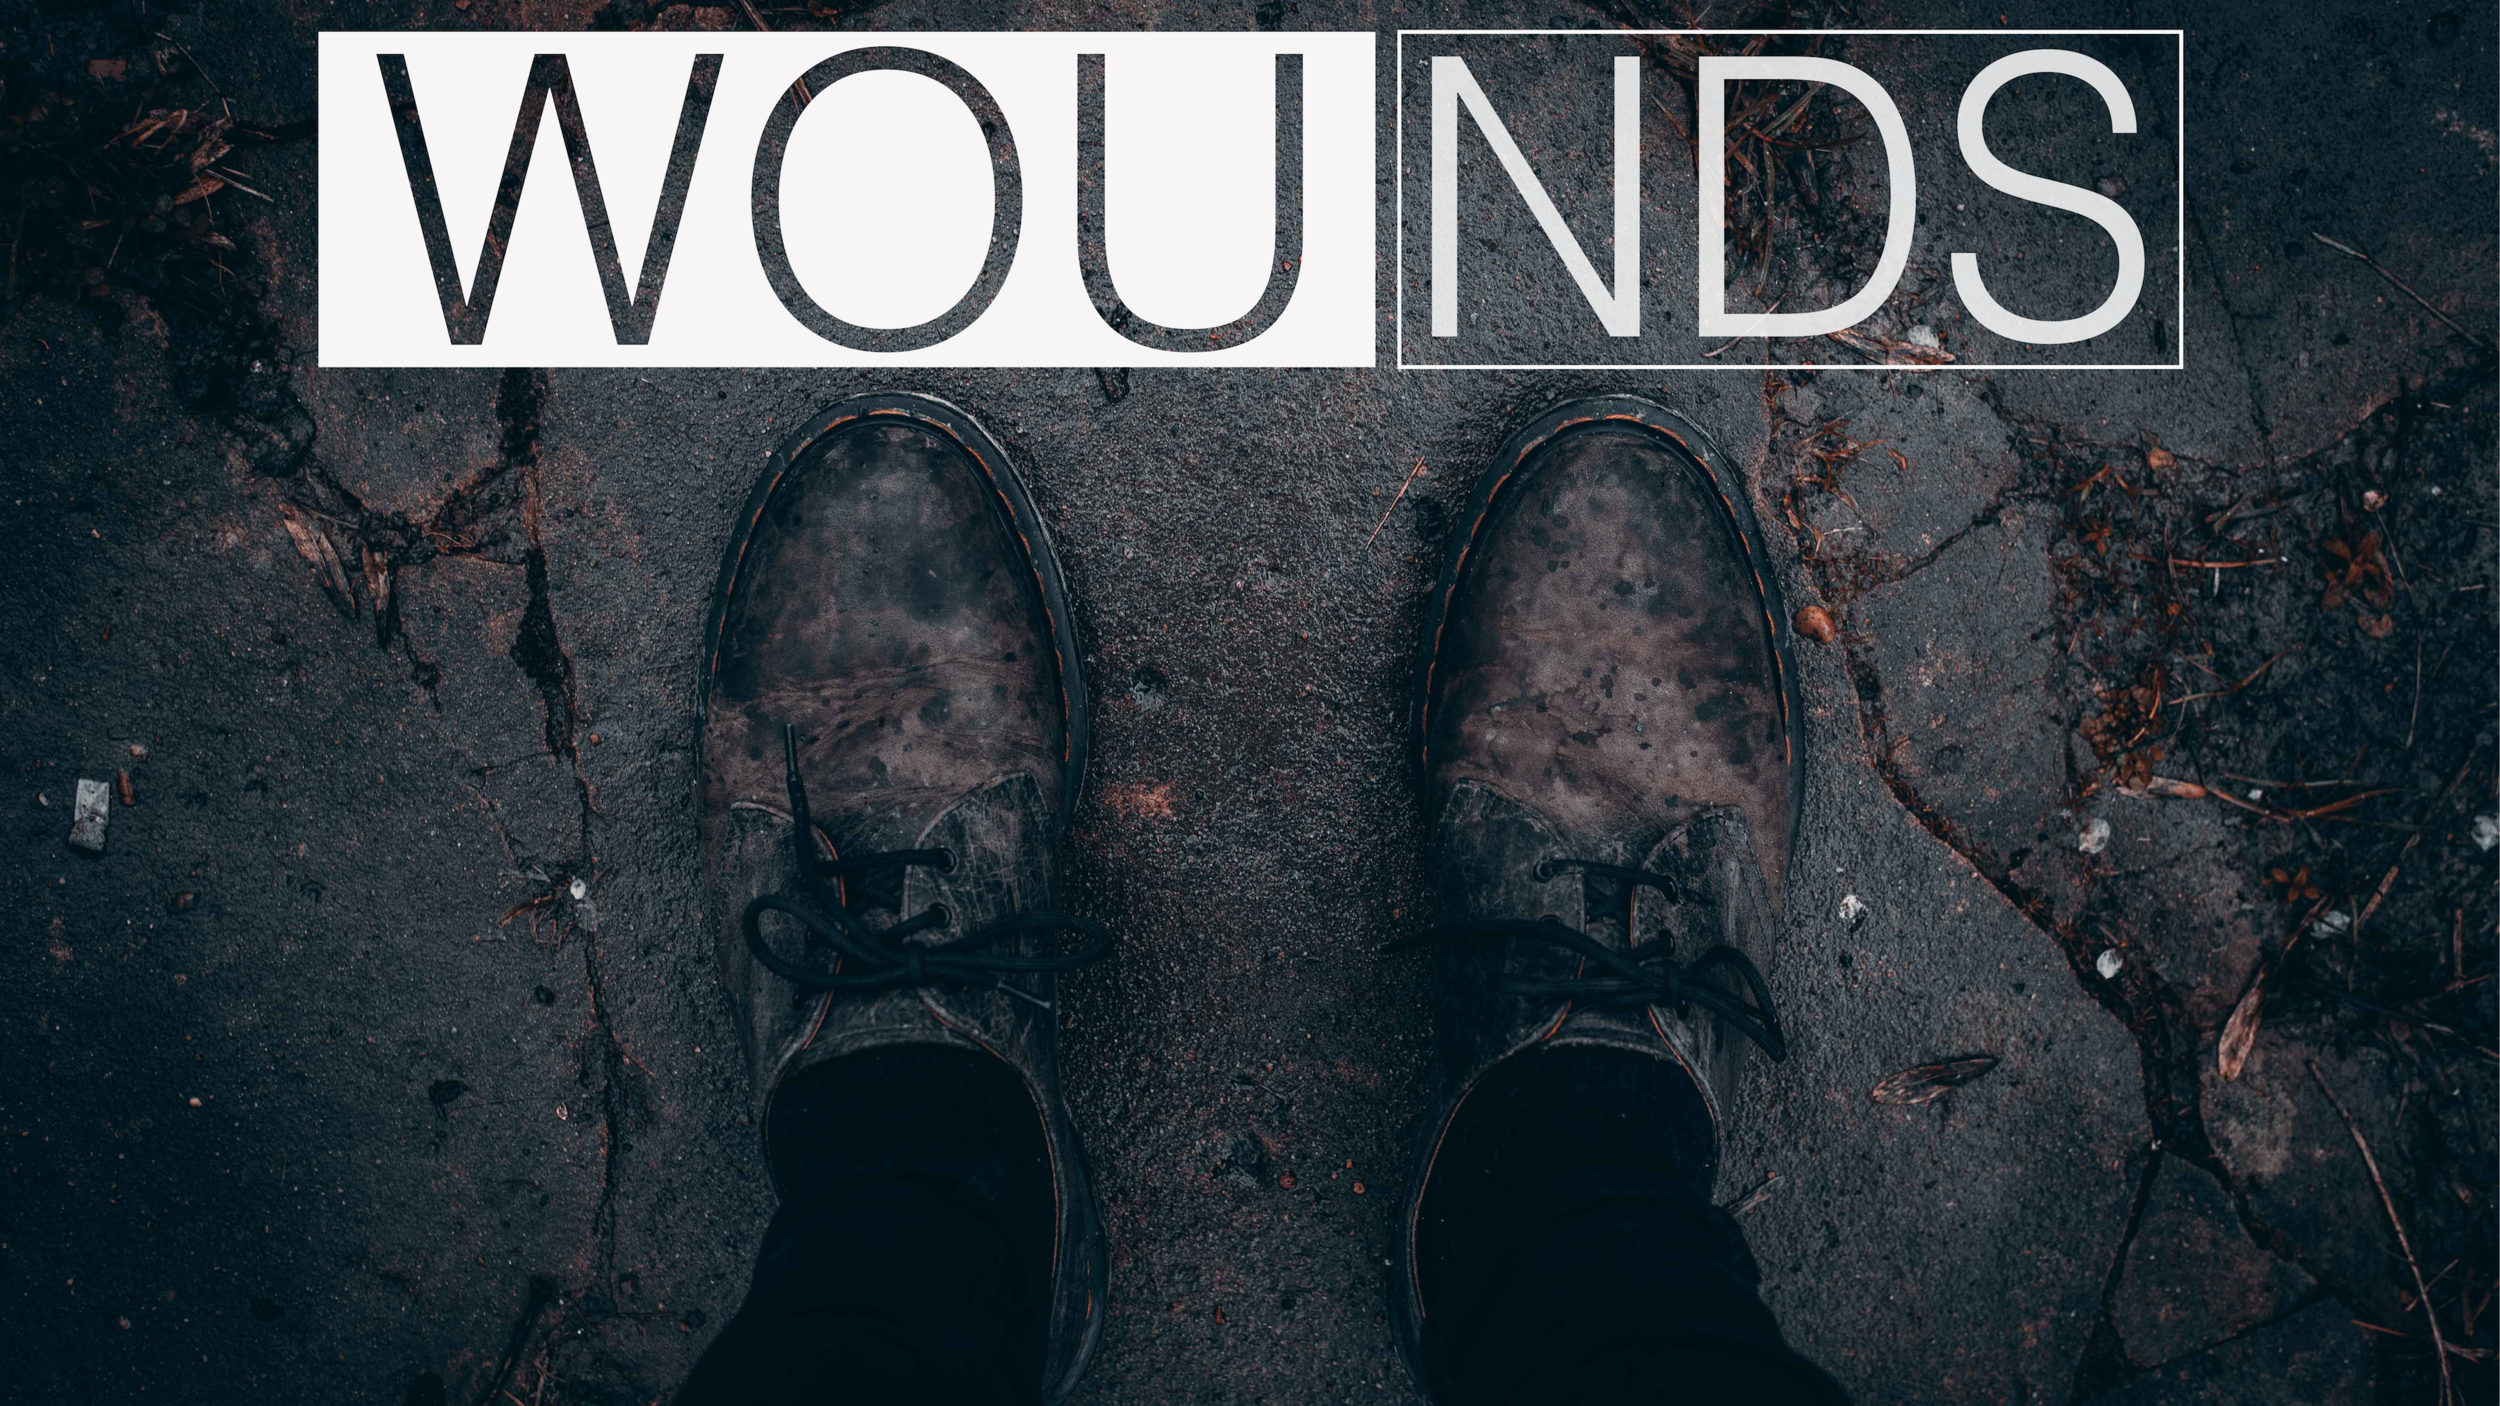 HCBCWounds2-01 copy.png